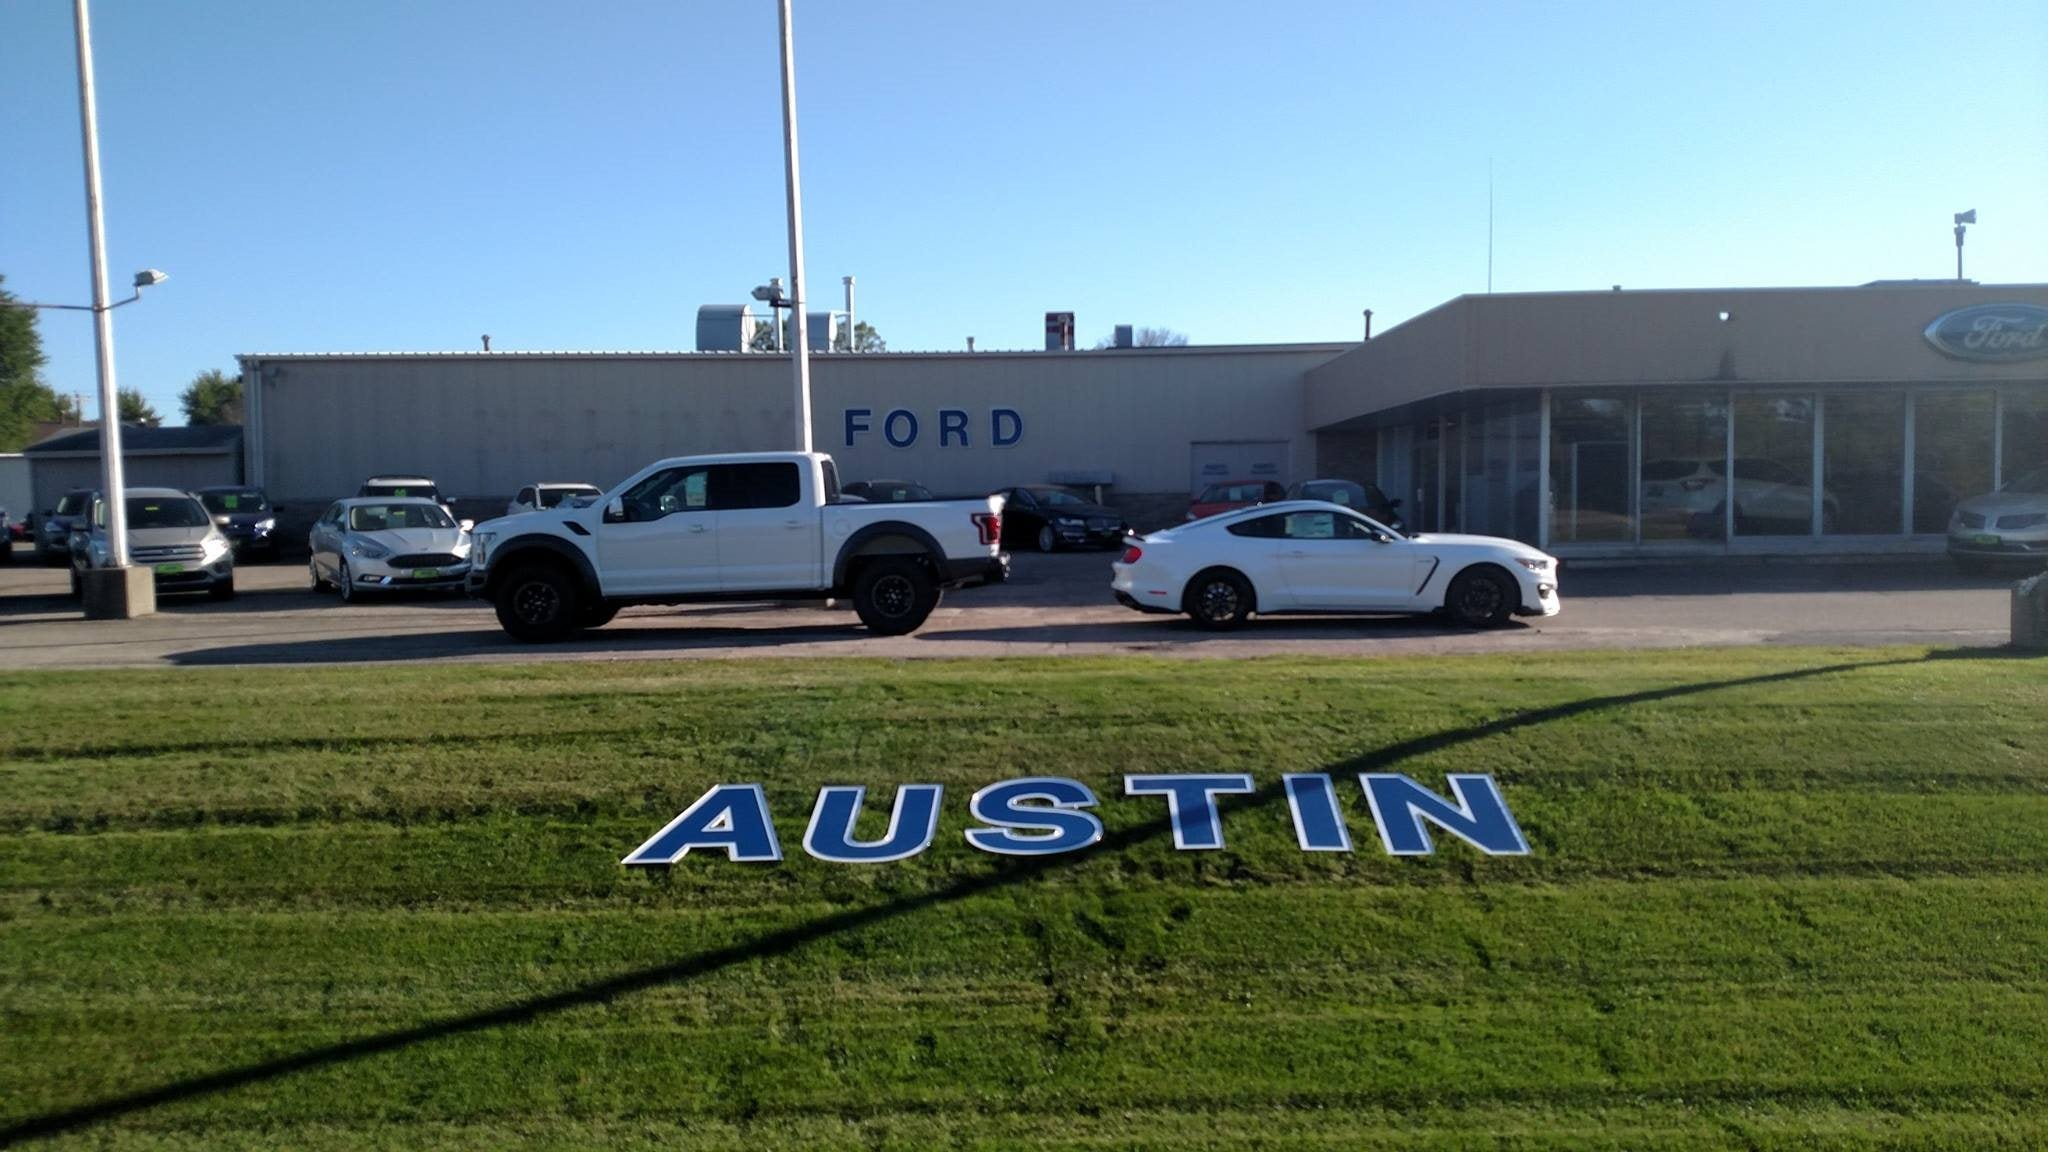 Order Ford parts | Auto Parts Austin | Austin Ford Lincoln